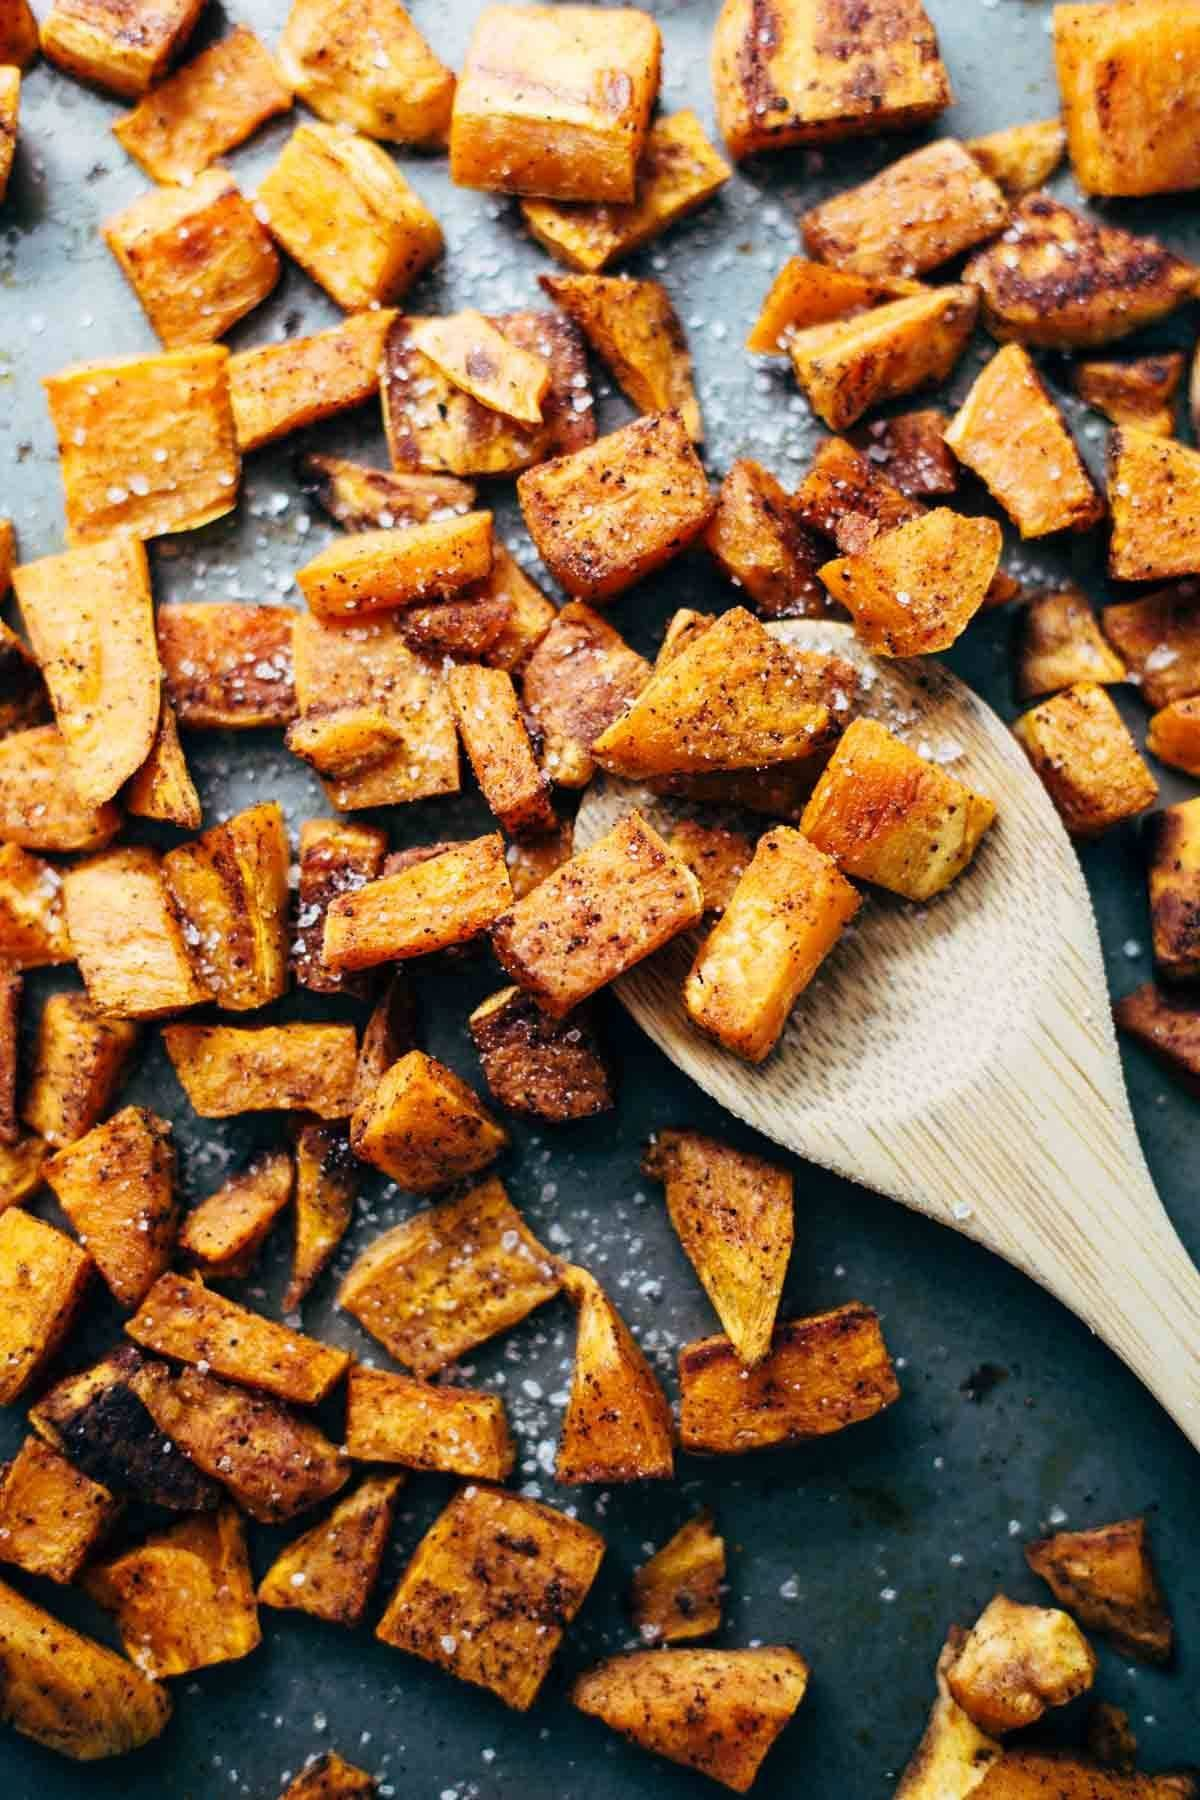 Roasted Sweet Potatoes for Southwestern Salad